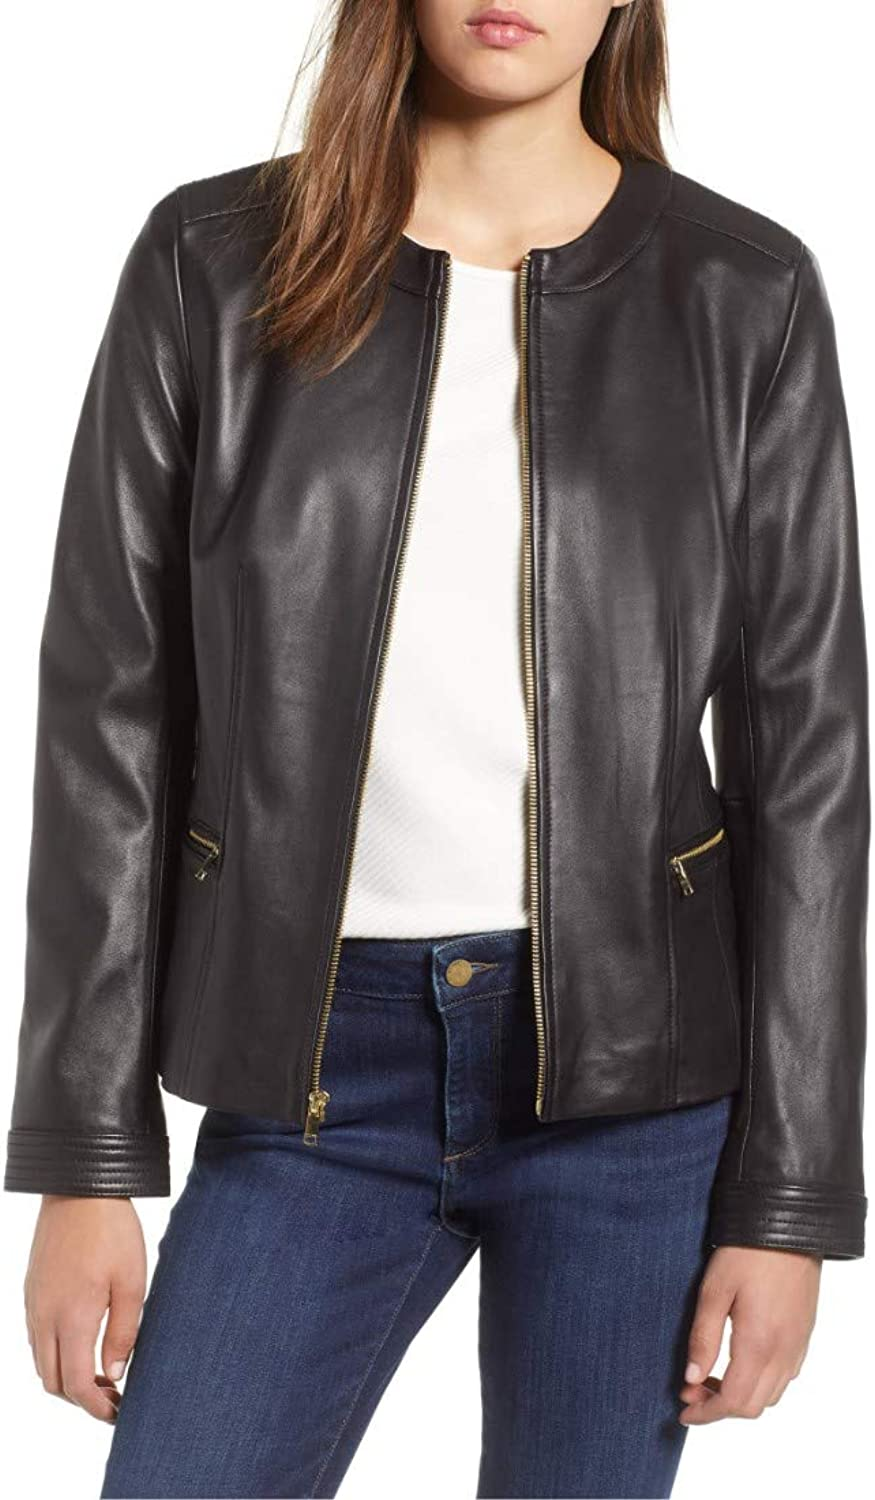 Dillo Leather Motorcycle Bomber Biker Black Real Leather Jacket for Women